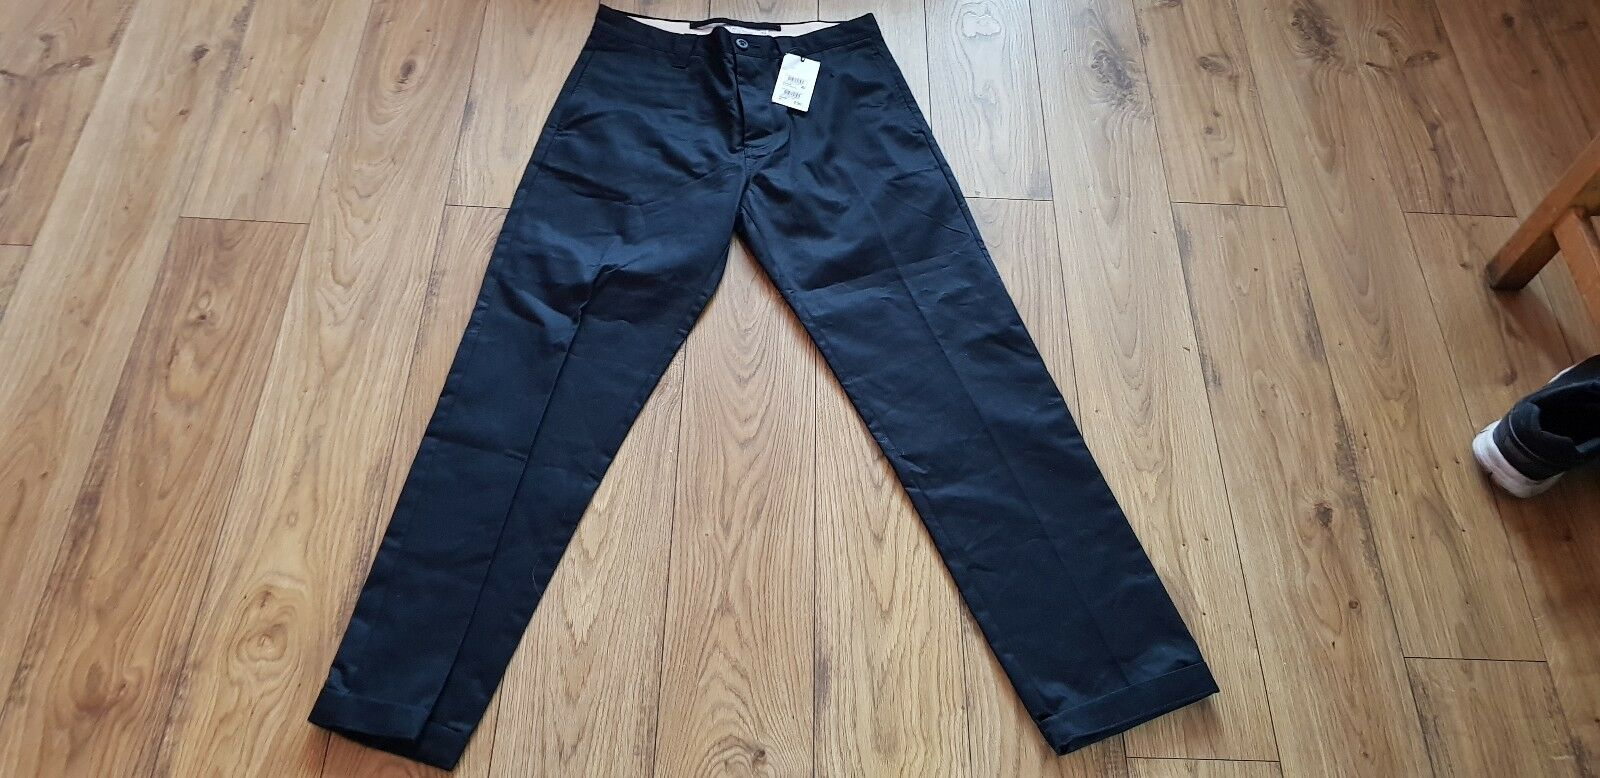 Homme Next Crafted Coupe Droite Noir Pantalon Taille 32 RRP L BNWT RRP 32 30.00 cdee4f